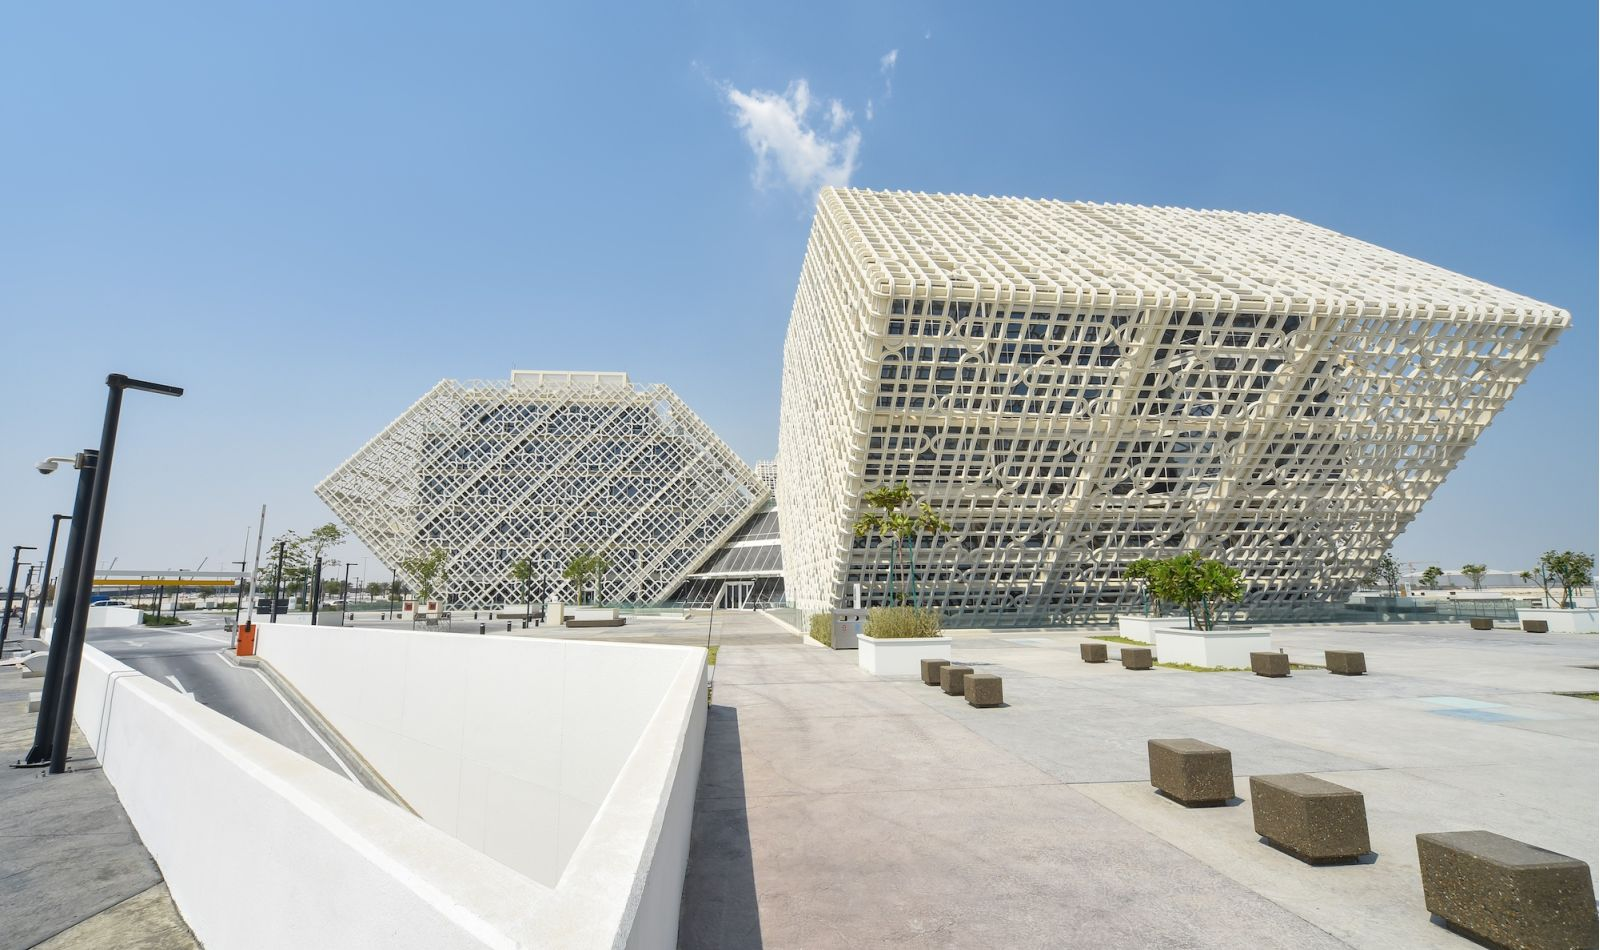 Exterior of Ras Bufontas Office Building, Hexagonal shape with white lattice covering